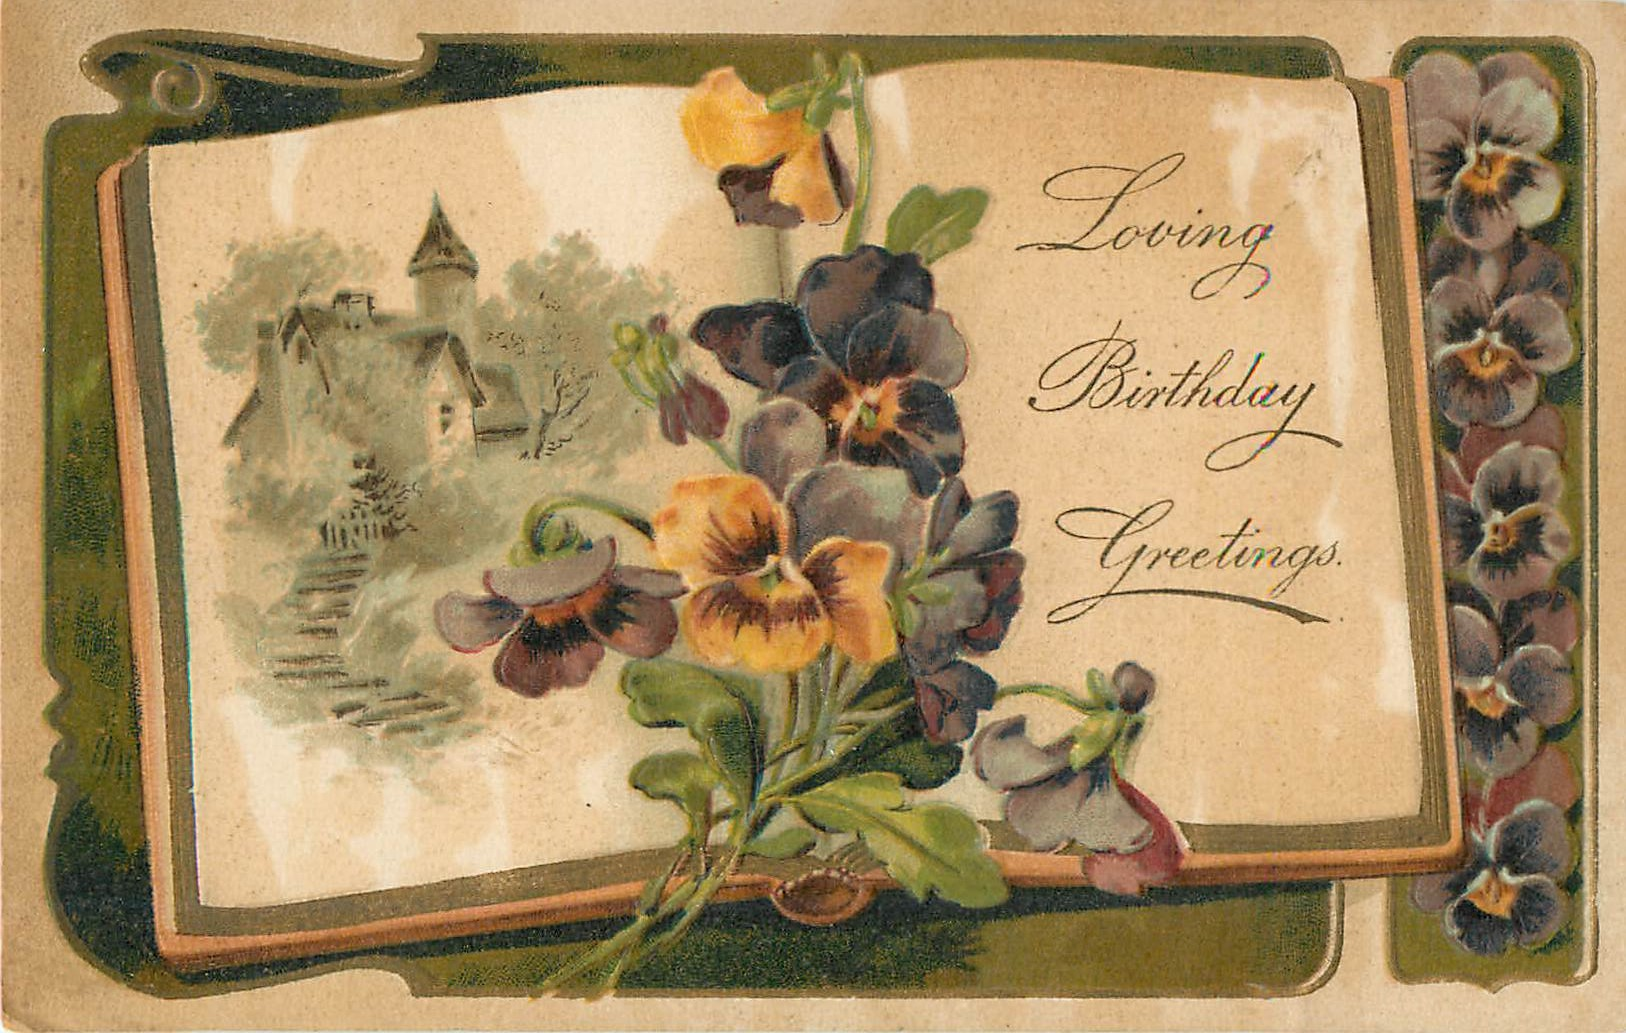 Loving Birthday Greetings Pansy